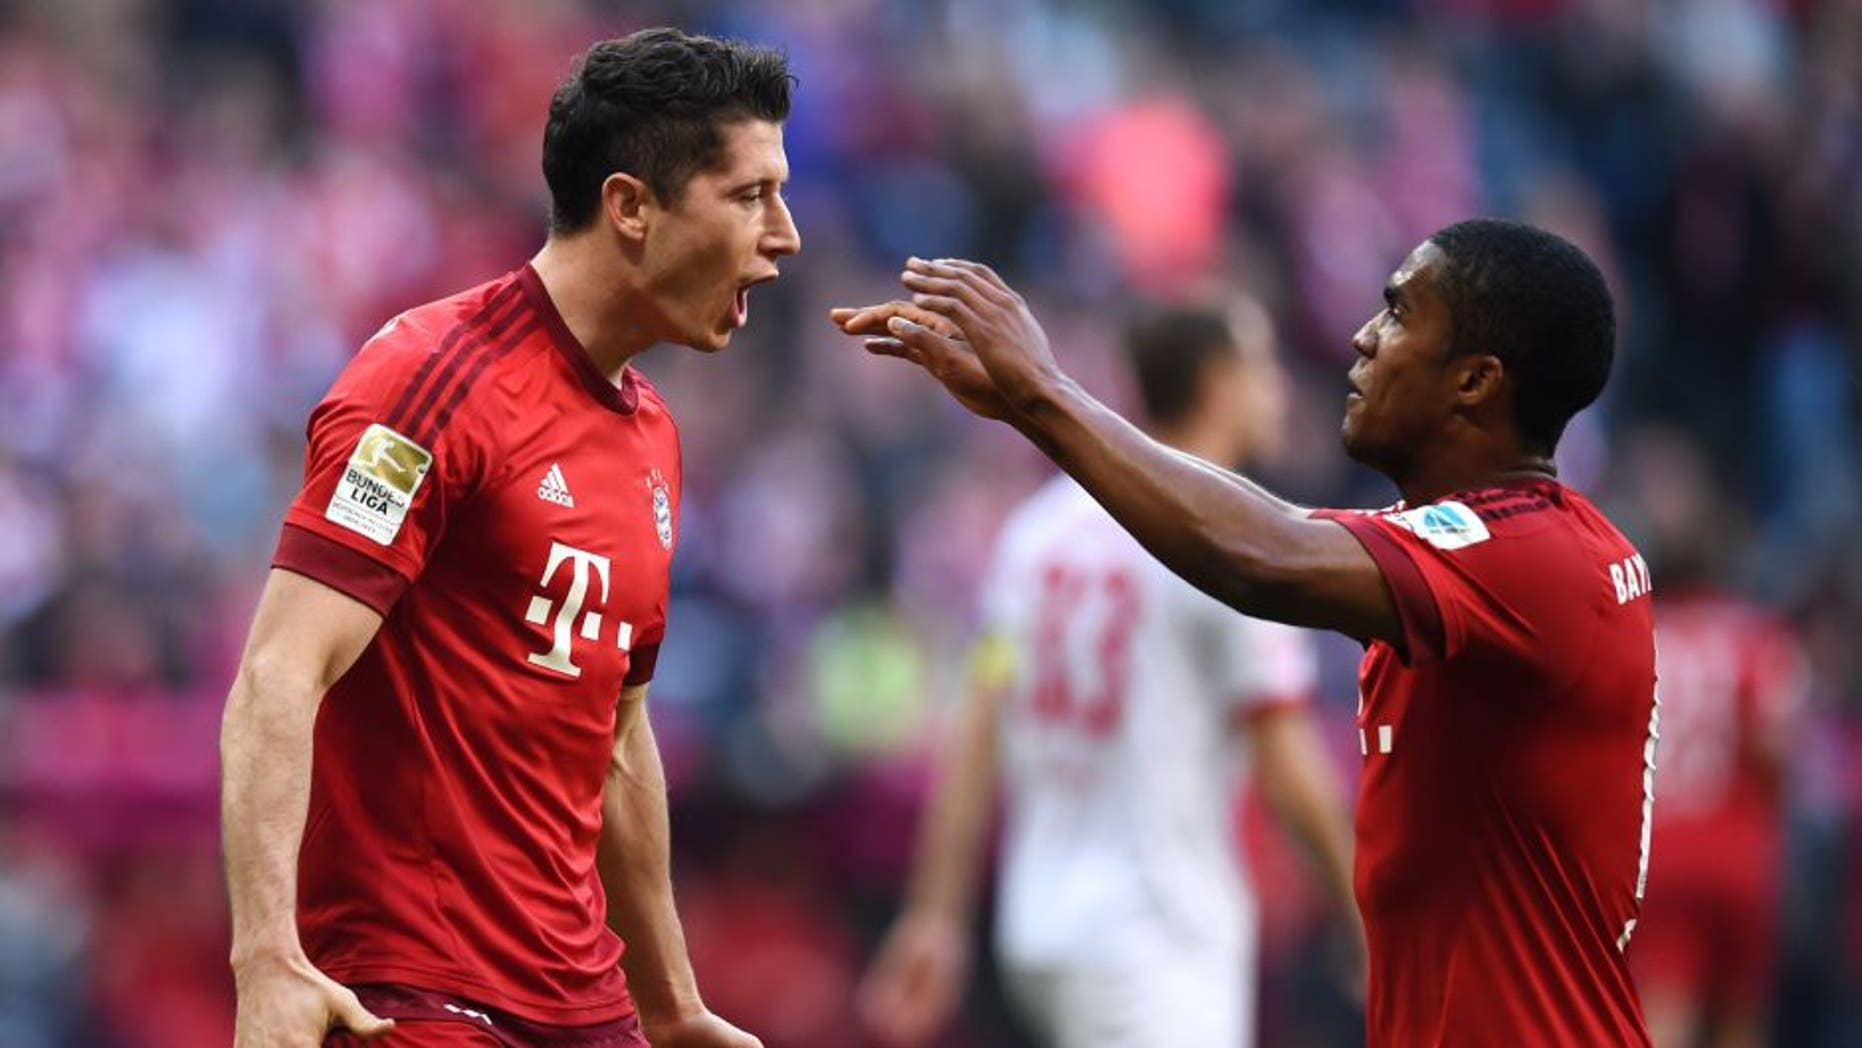 MUNICH, GERMANY - OCTOBER 24: Robert Lewandowski of Muenchen celebrates with his team-mates after scoring his team's third goal during the Bundesliga match between FC Bayern Muenchen and 1. FC Koeln at Allianz Arena on October 24, 2015 in Munich, Germany. (Photo by Matthias Hangst/Bongarts/Getty Images)